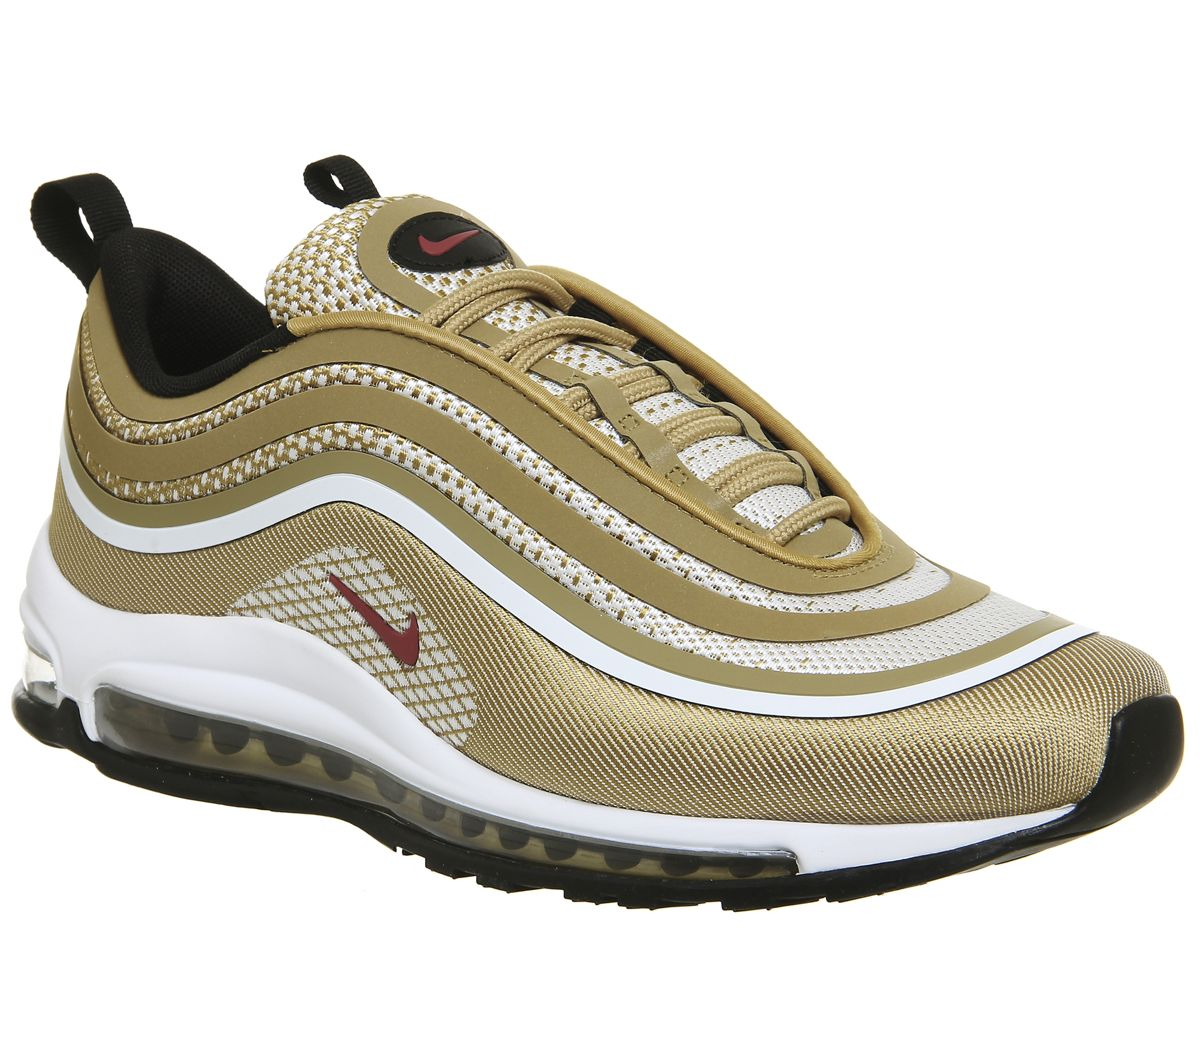 quality design 5b02f 7df58 Nike Air Max 97 Ul Metallic Gold Varsity Red Black White - His trainers